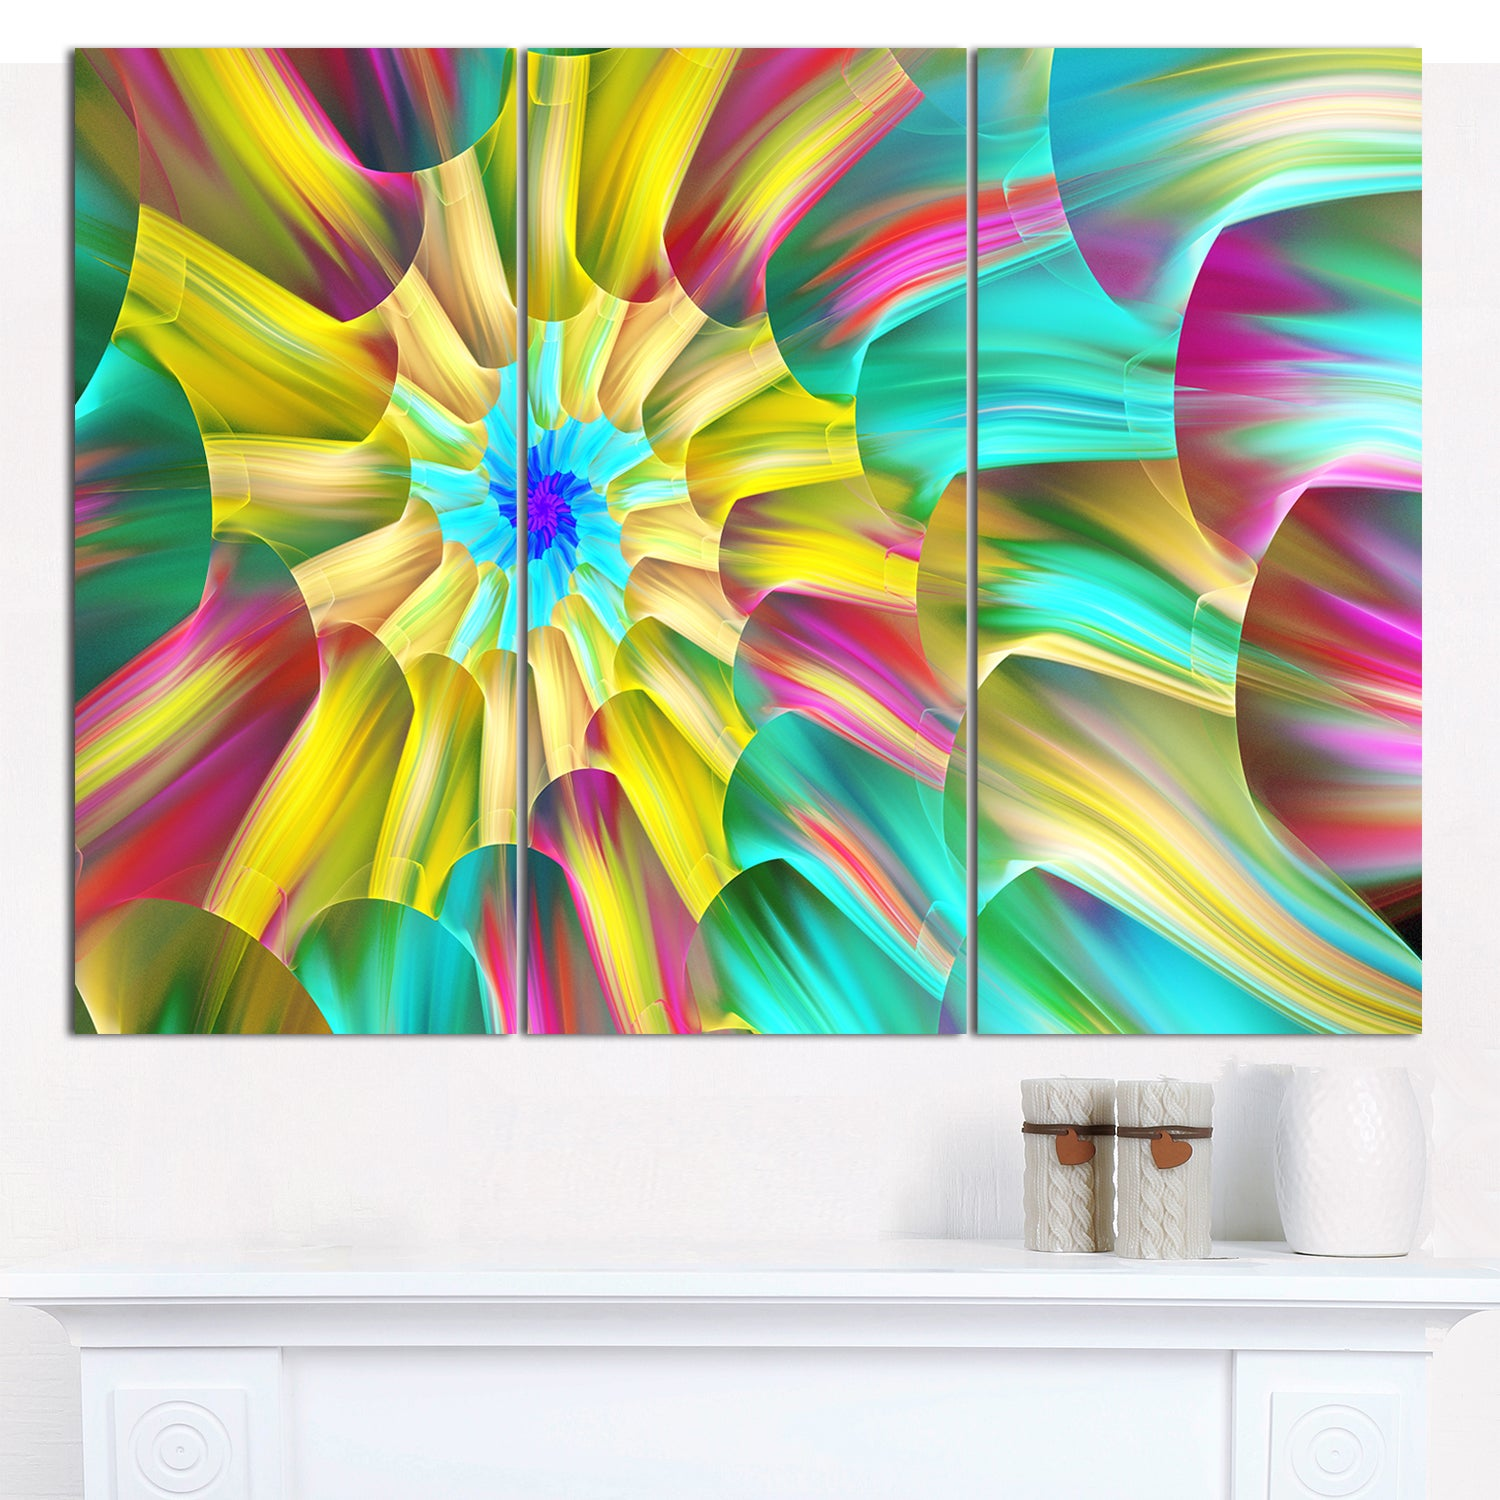 Dorable Stained Glass Wall Decor Pattern - The Wall Art Decorations ...